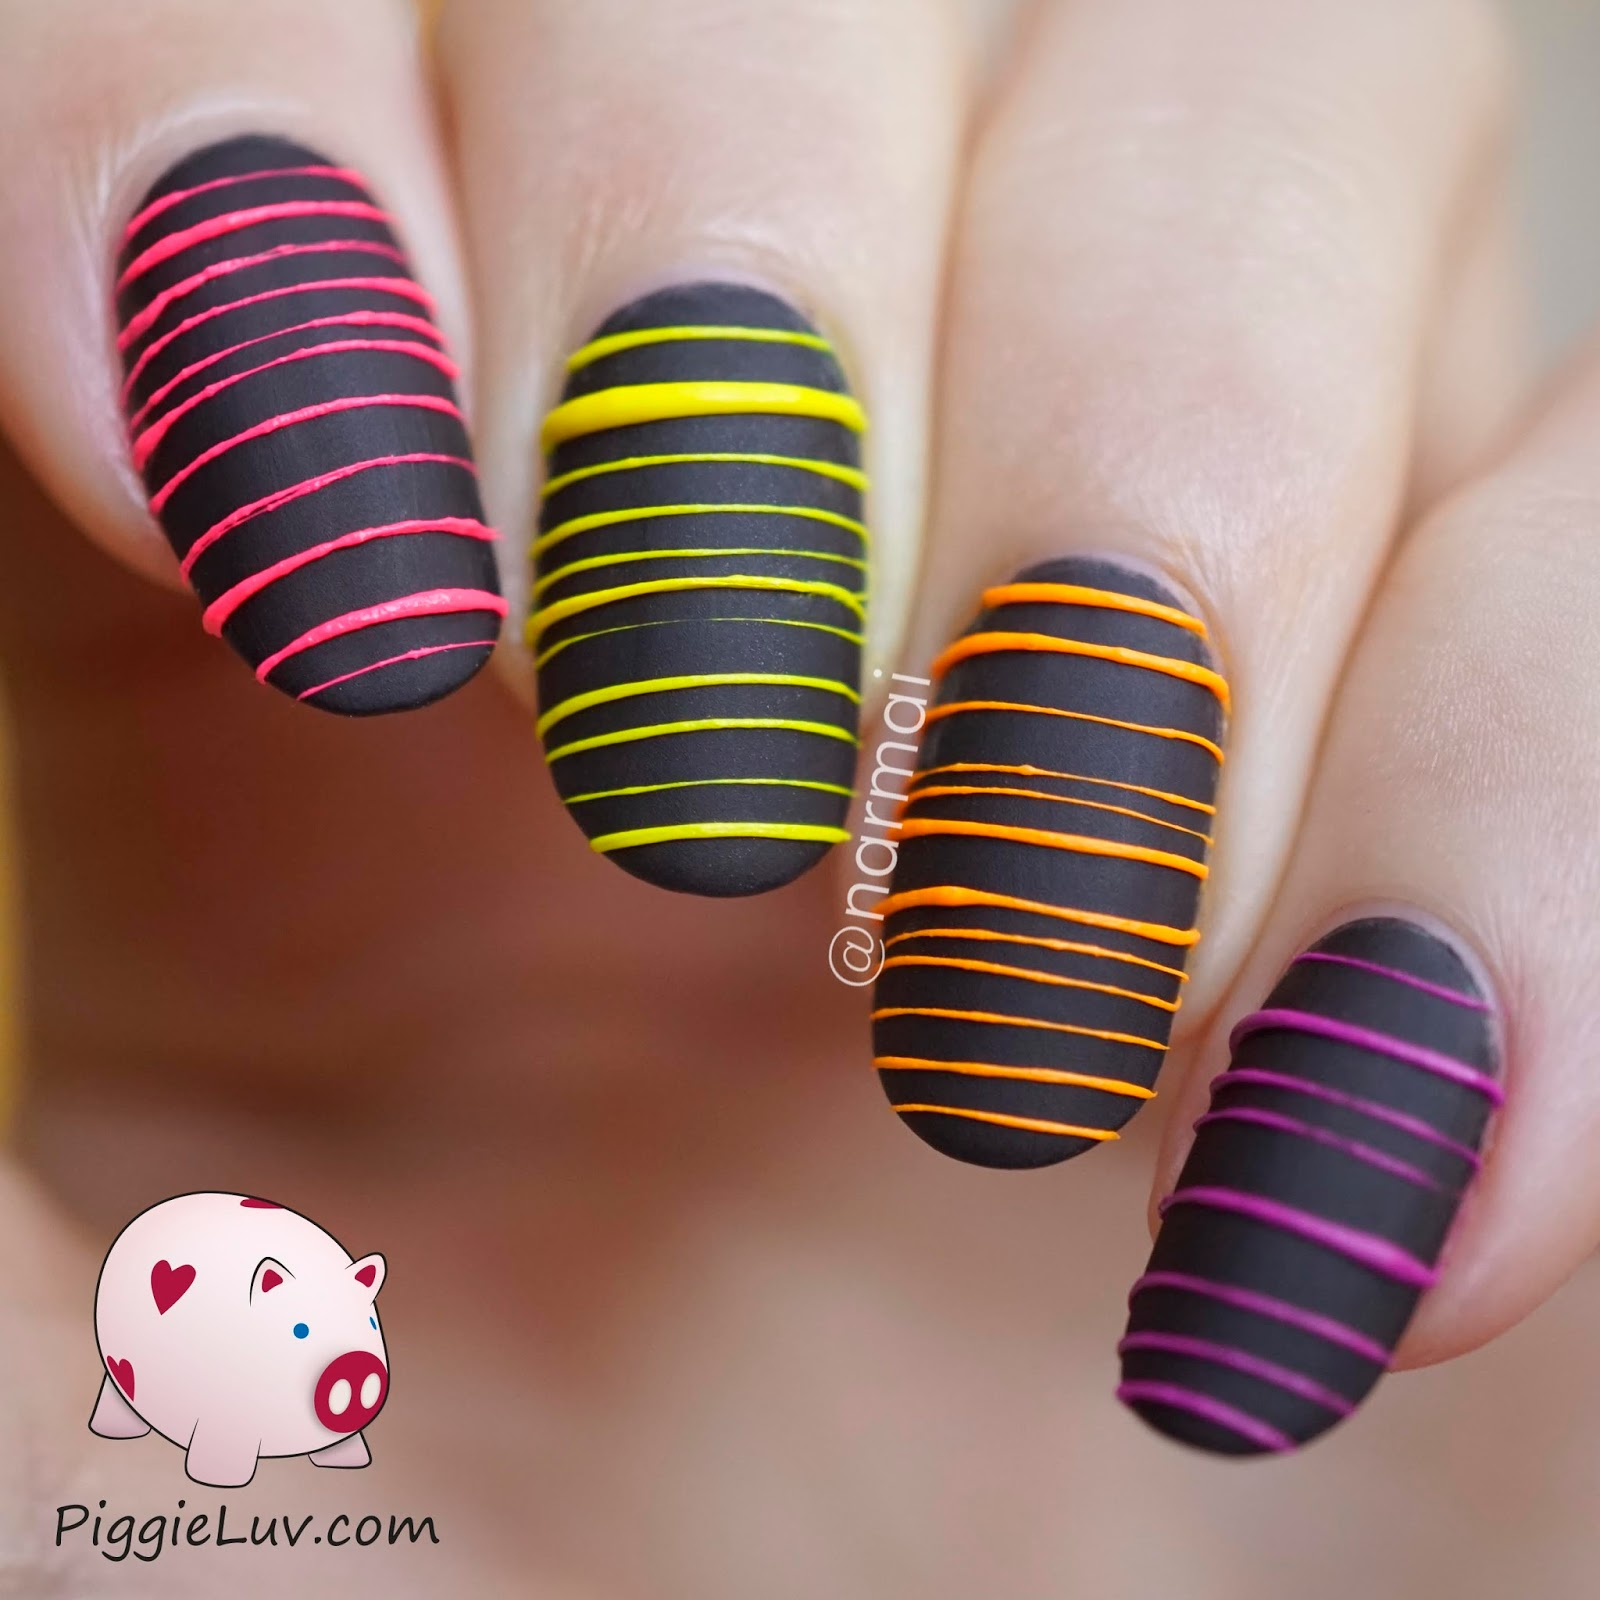 Piggieluv glow in the dark sugar spun nail art video tutorial glow in the dark sugar spun nail art video tutorial prinsesfo Gallery